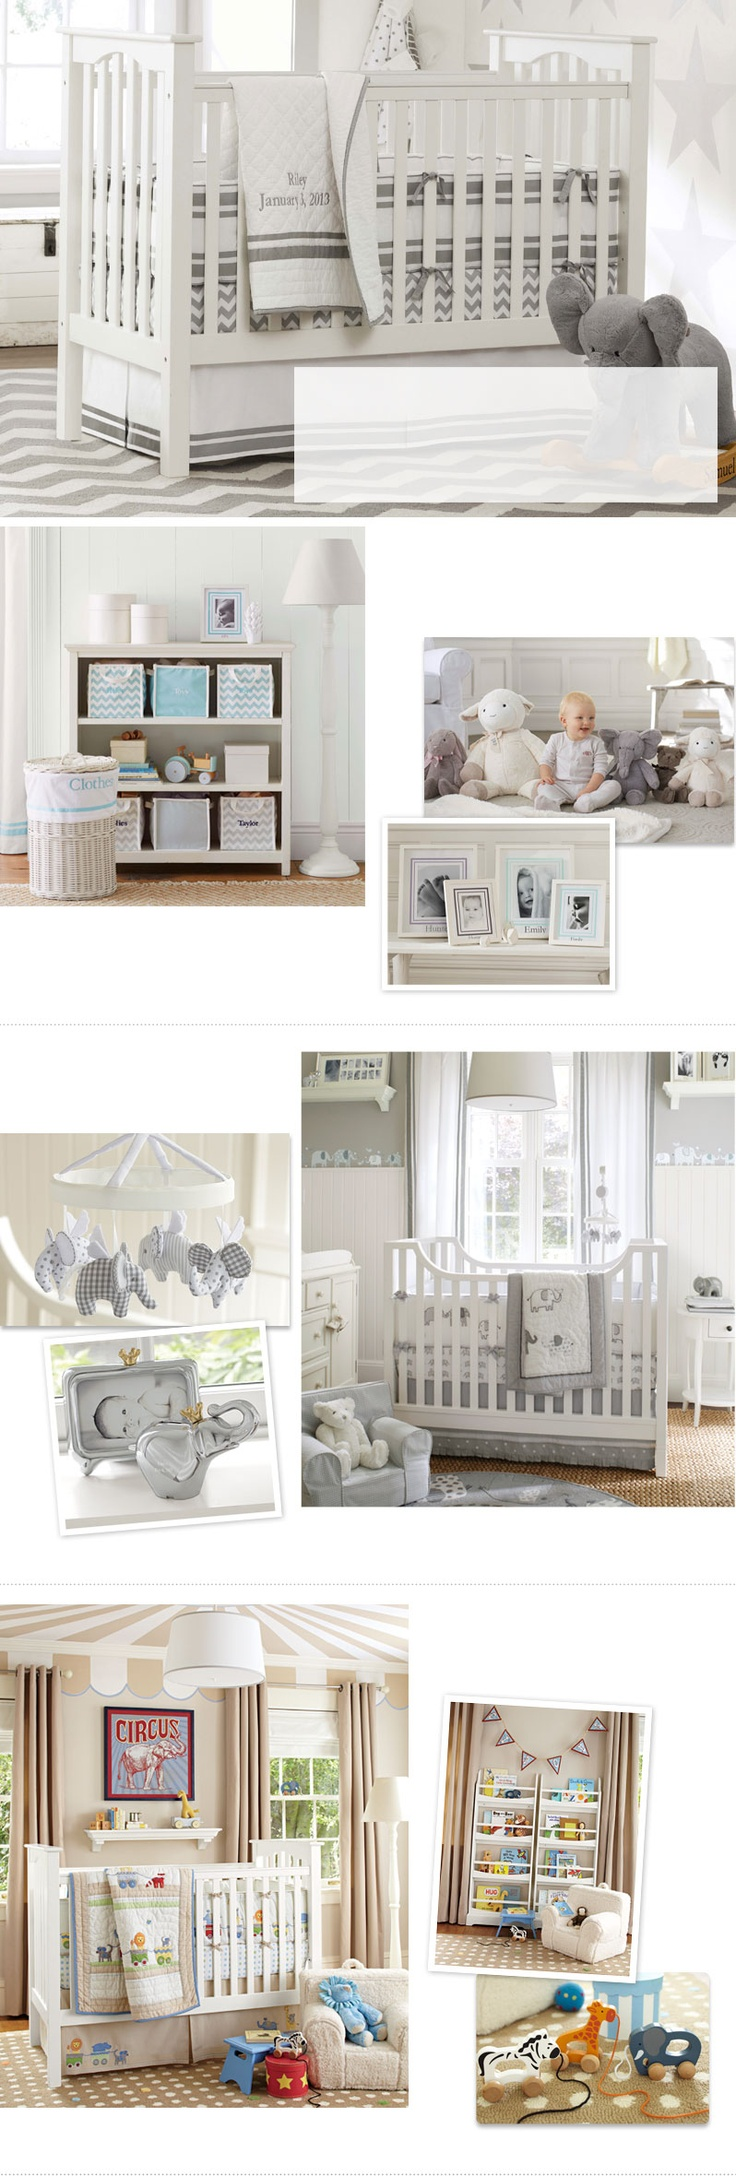 Redo The Nursery? Love The Chevron Stripe Sheets And The Grey And White